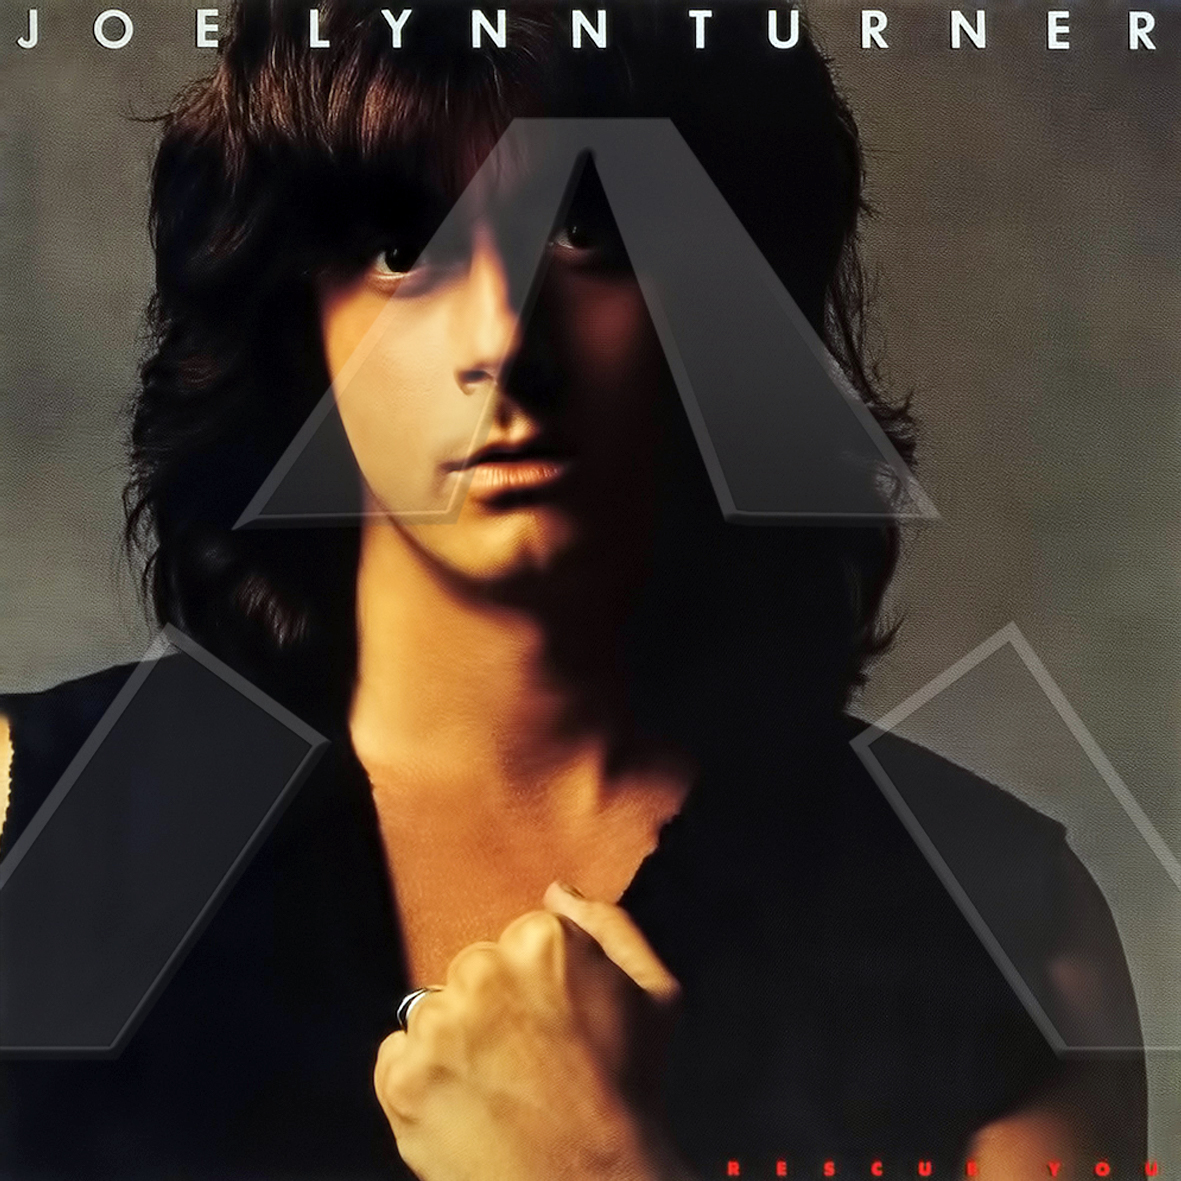 Joe Lynn Turner ★ Rescue You (vinyl album EU ST12521)